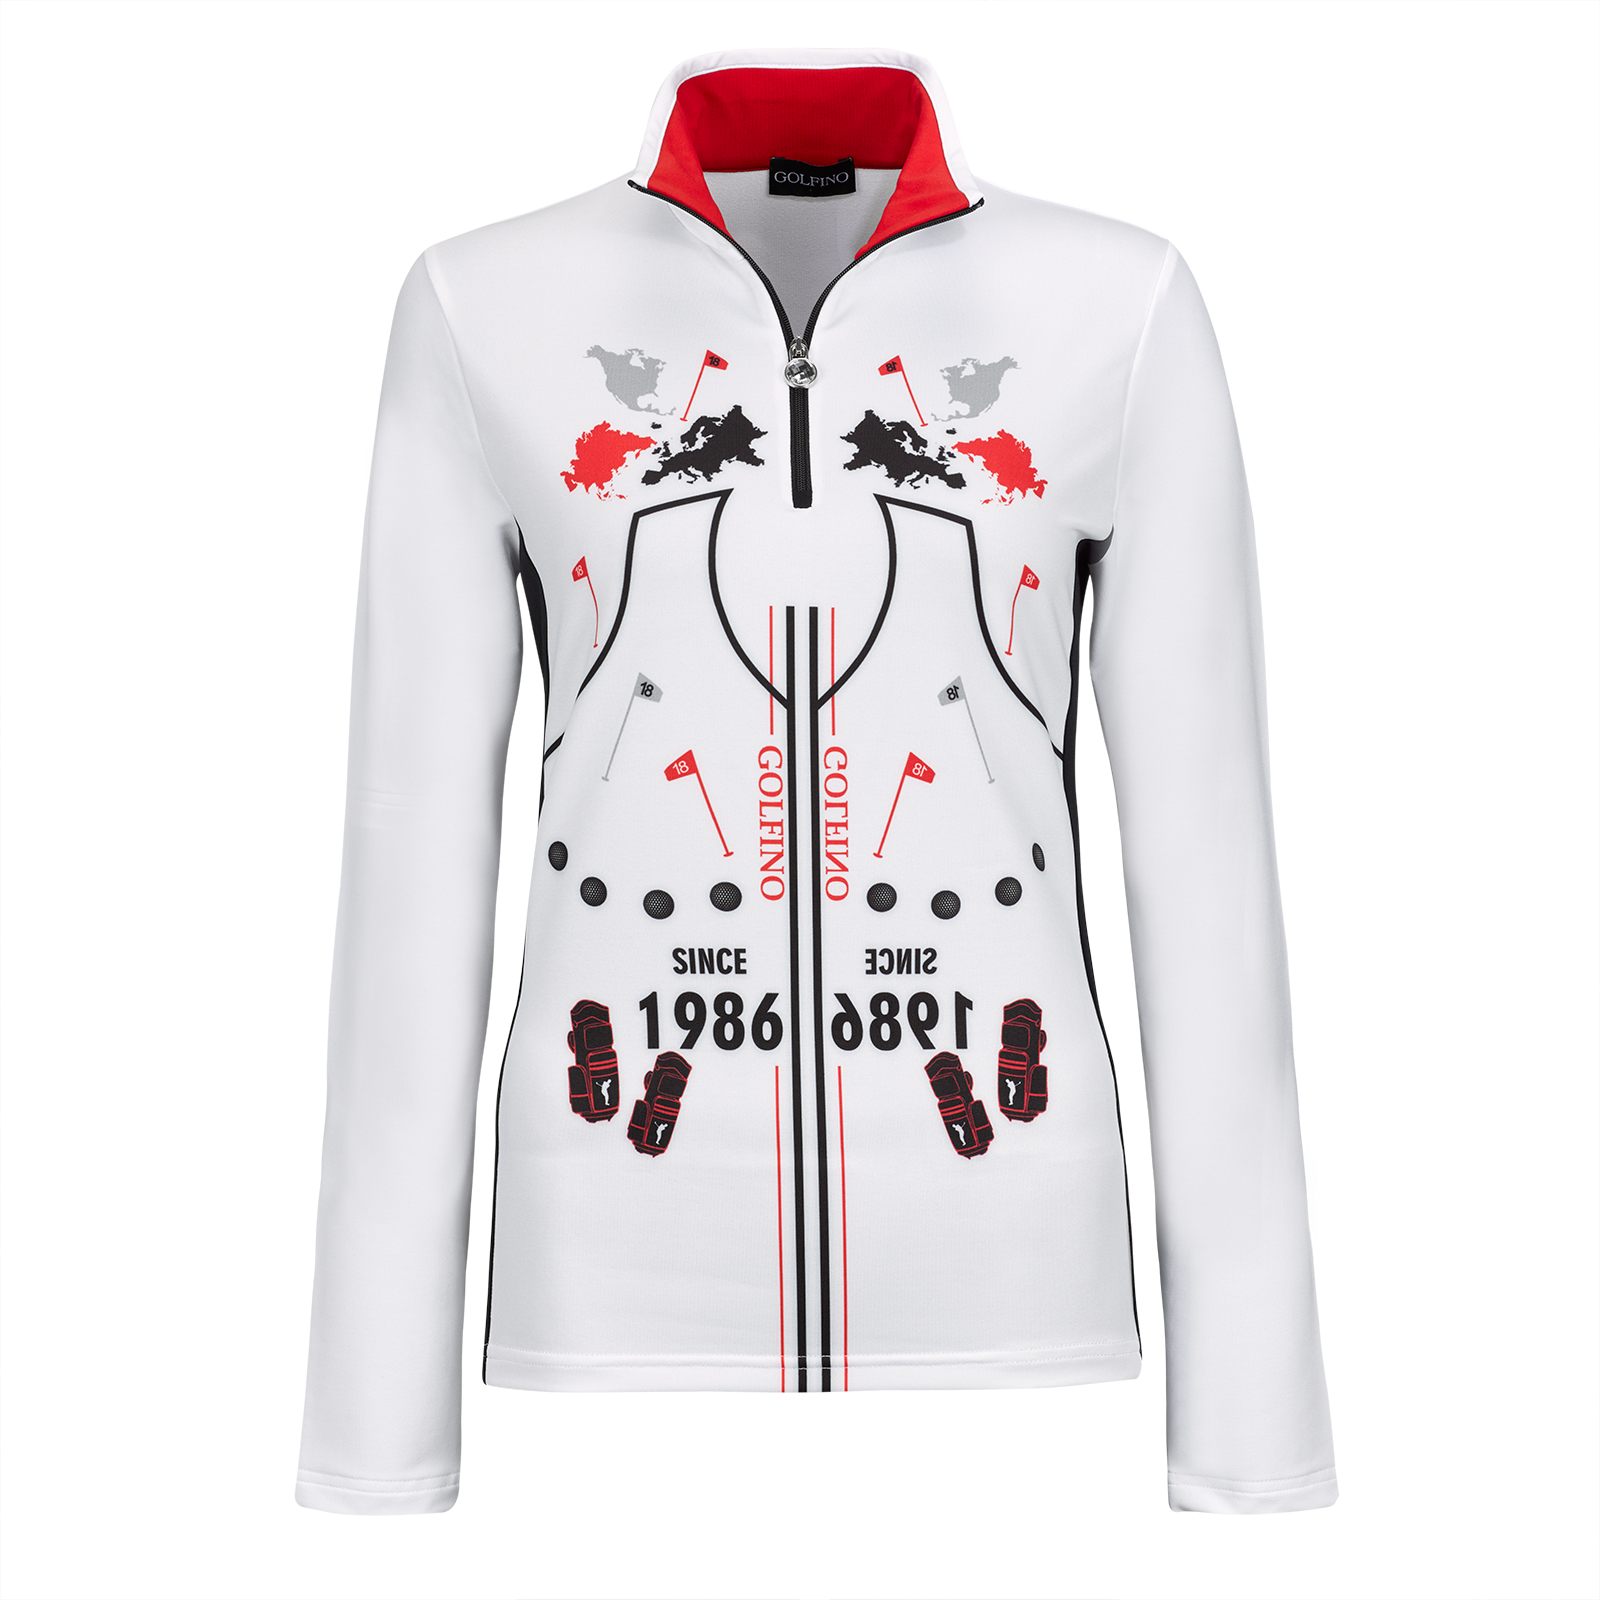 Long-sleeve Ladies' printed golf troyer with Moisture Management in slim fit